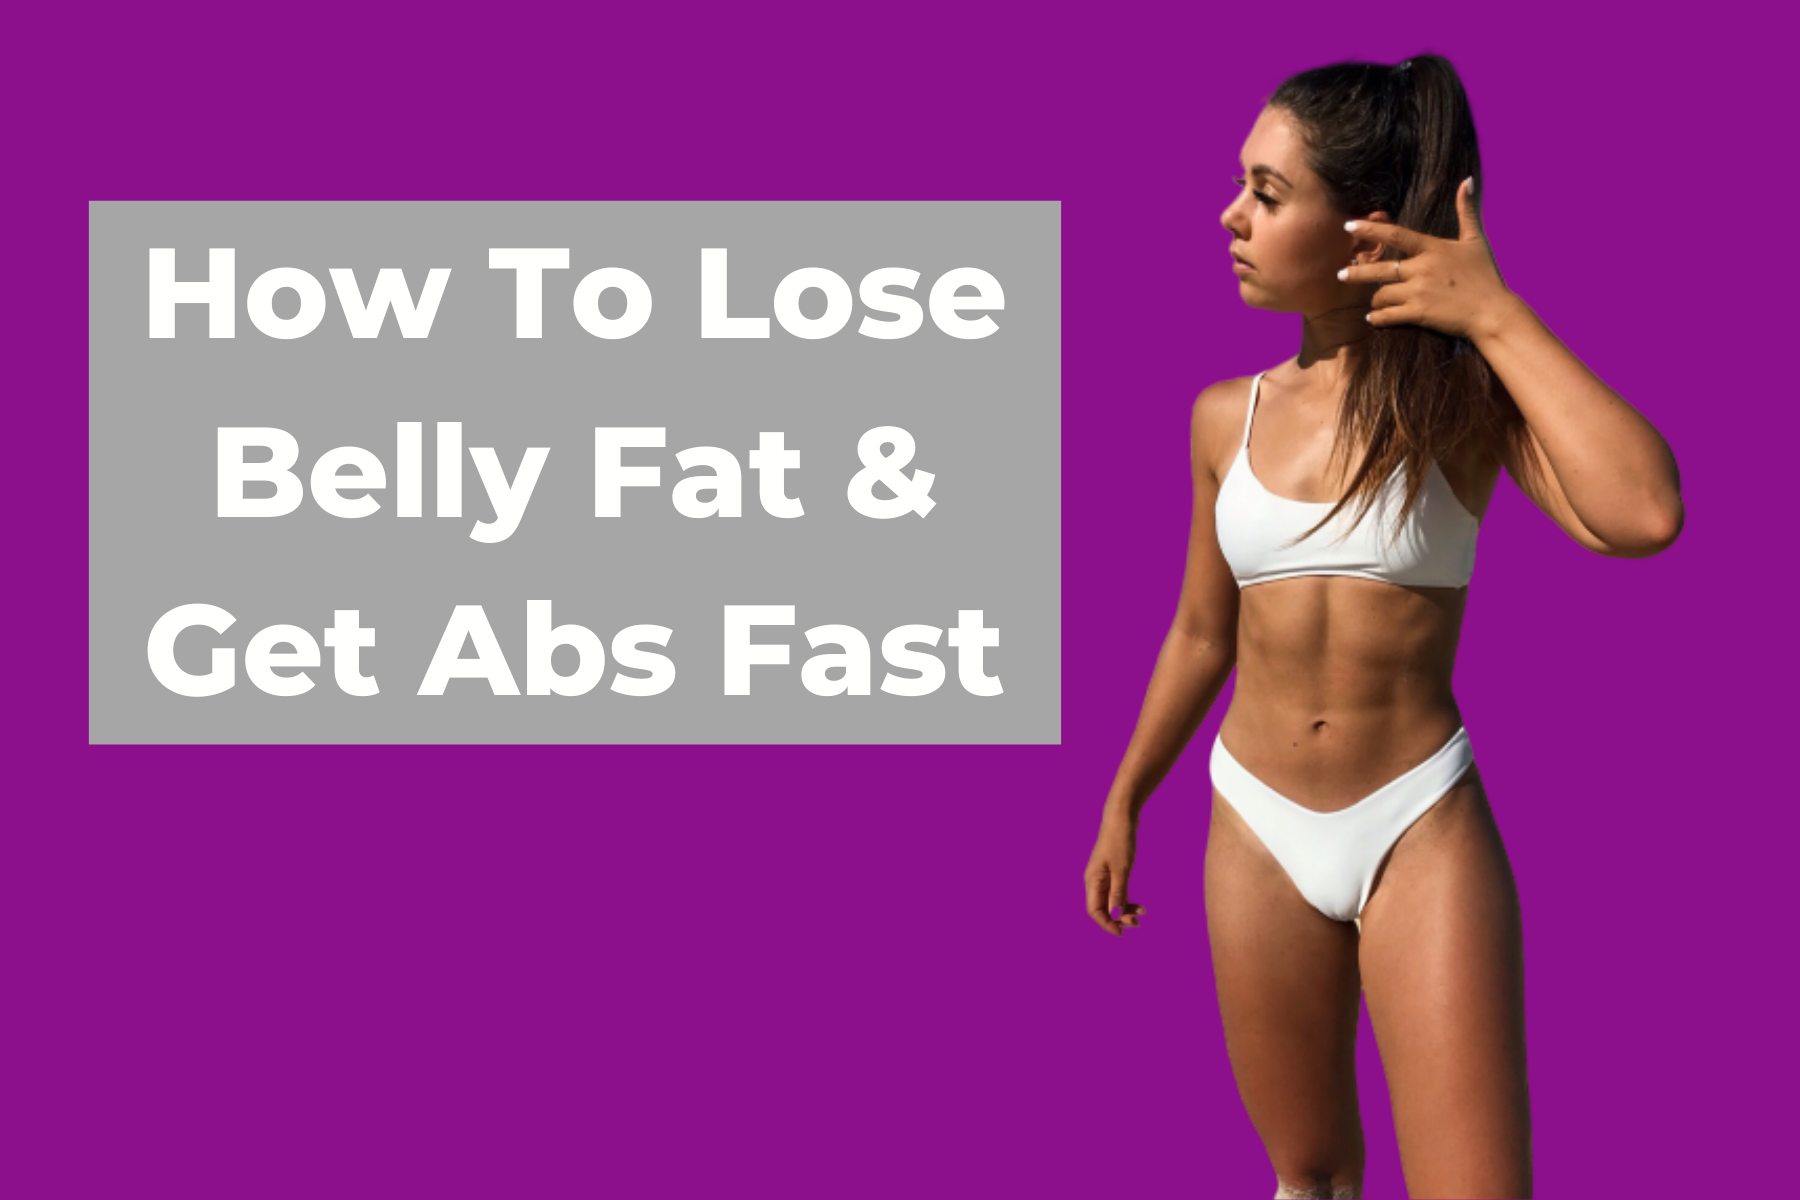 How to lose belly fat and get abs fast - Coach Jodie